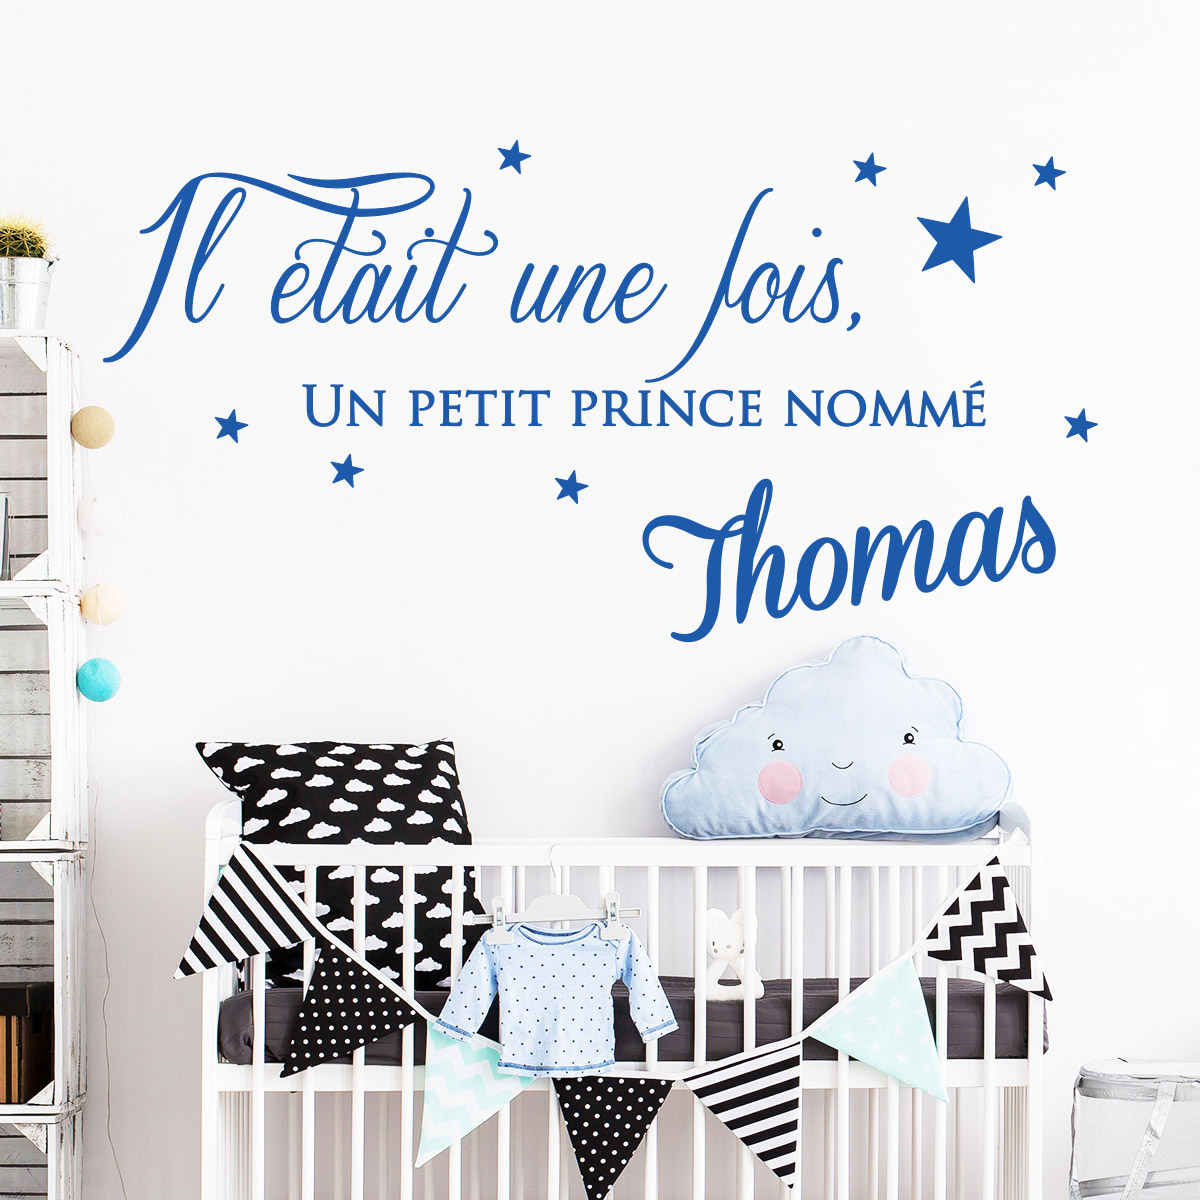 Https Www Ambiance Sticker Com En Wall Decal Fairy With Your Name Xml 370 3339 3337 1233 Html 2021 01 07 Daily 1 Https Www Ambiance Sticker Com Images Imagecache Fiche Article Sticker Fee Avec Votre Nom Ambiance Sticker Fiction 001b